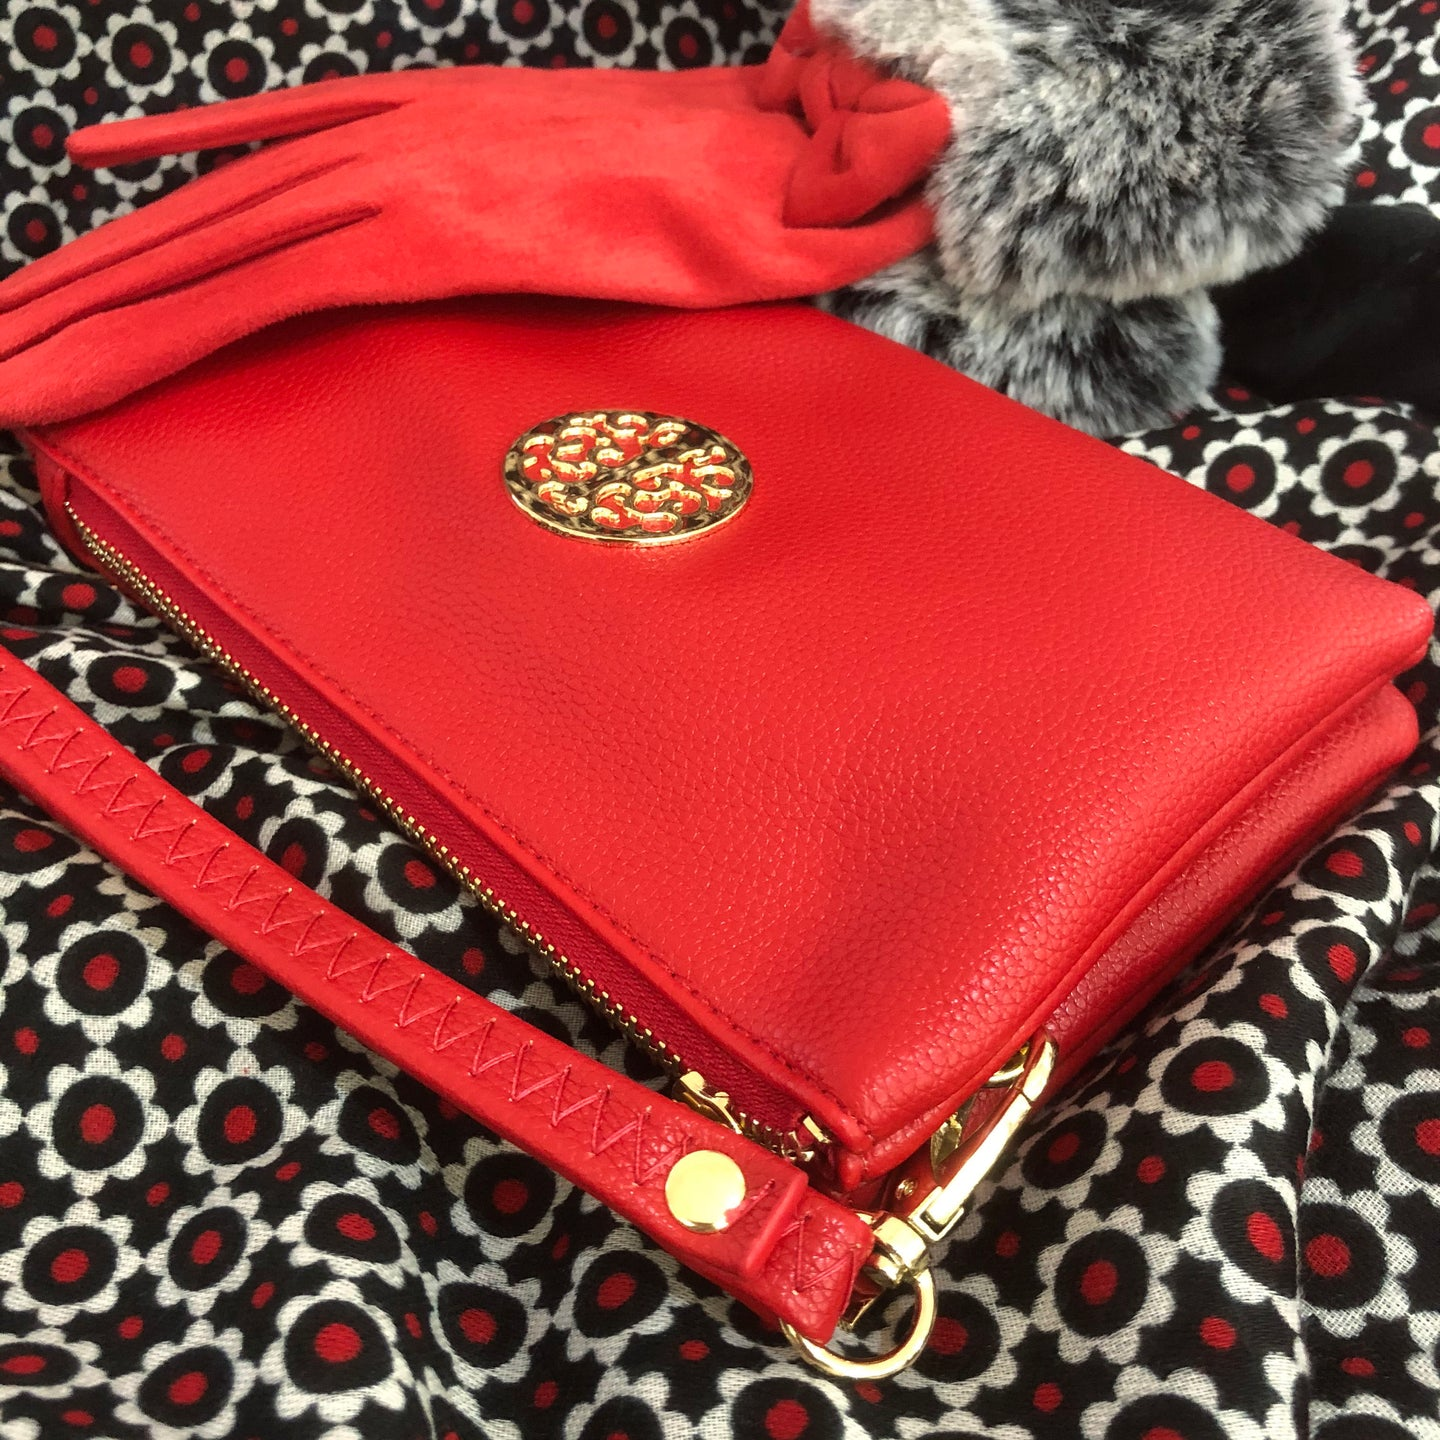 Red Tree of Life Clutch Bag